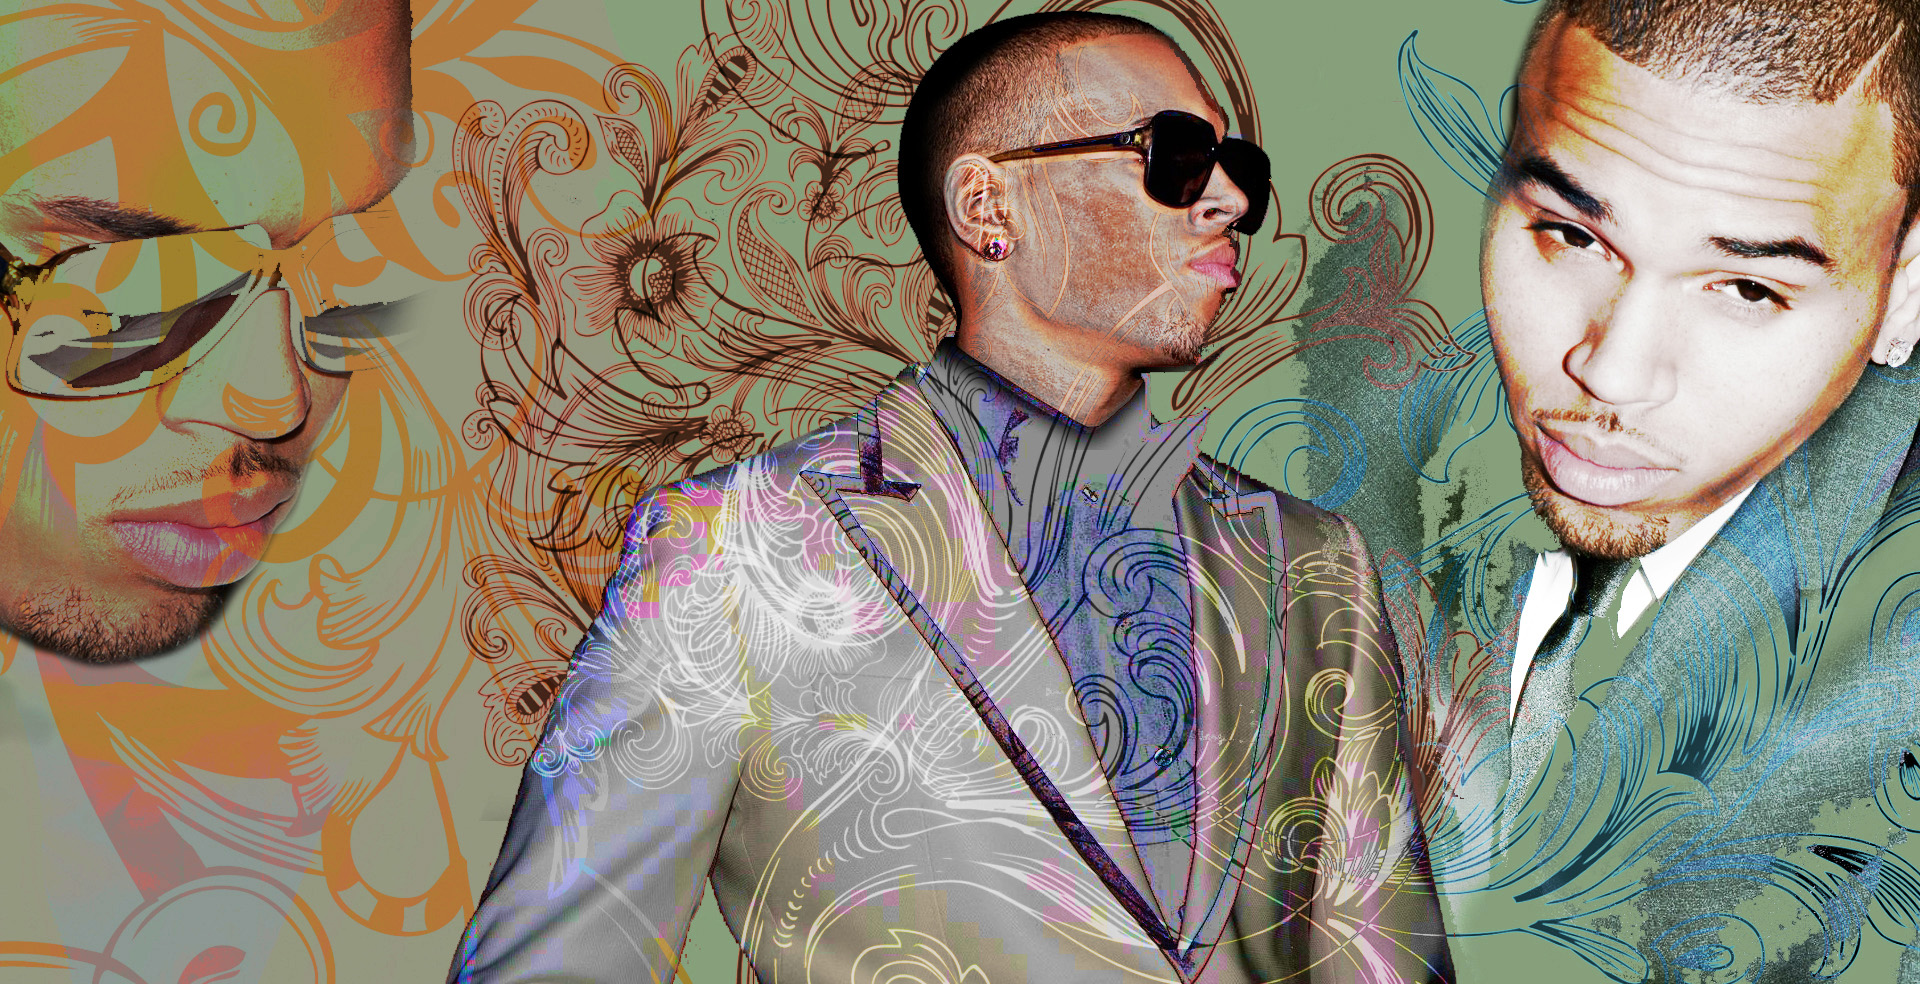 chris brown desktop backgrounds Wallpaper 1920x984